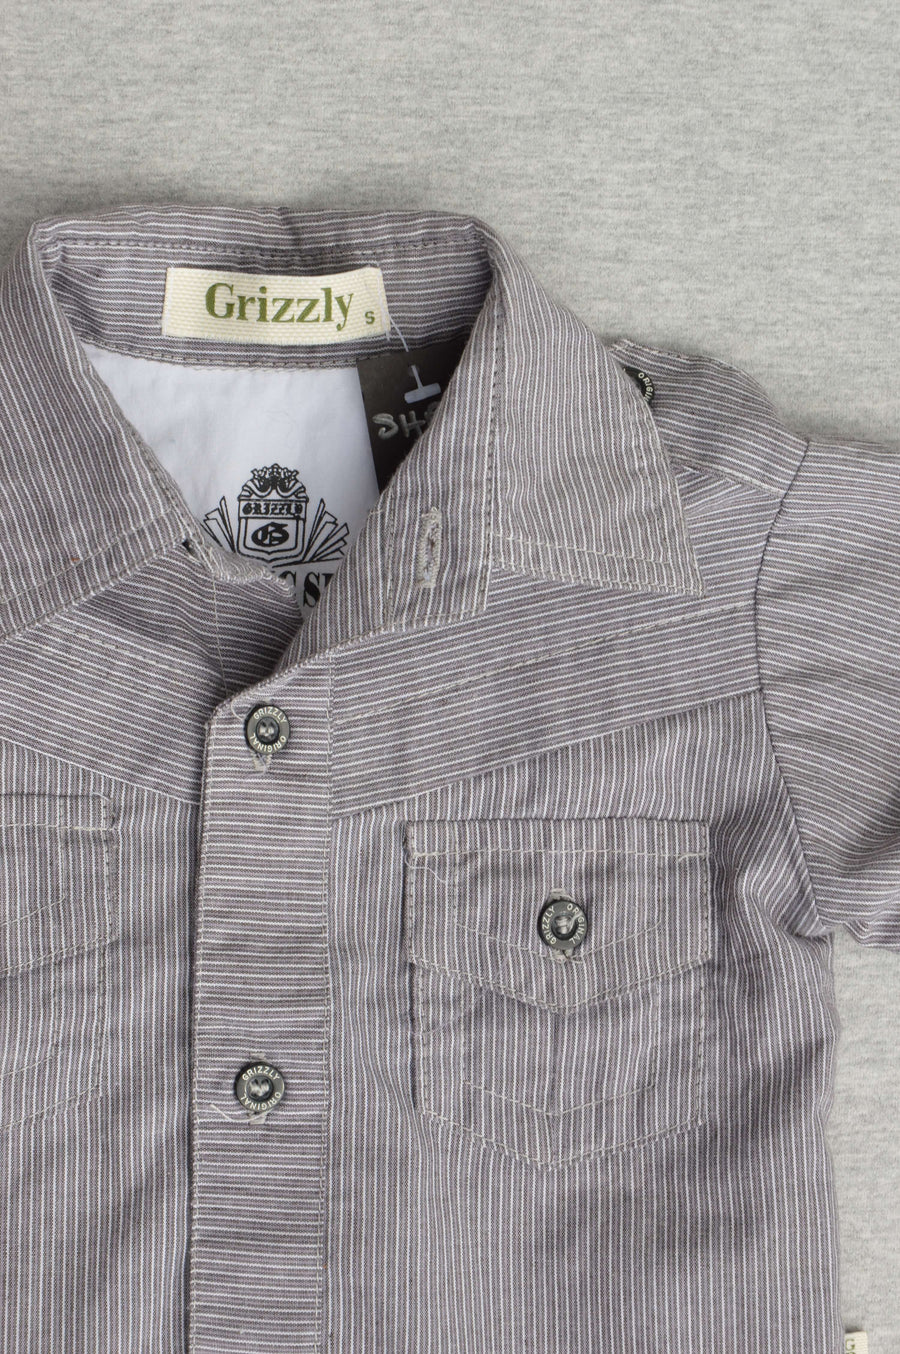 Grizzly - nearly new - grey & white striped long-sleeve shirt, size 12-18m